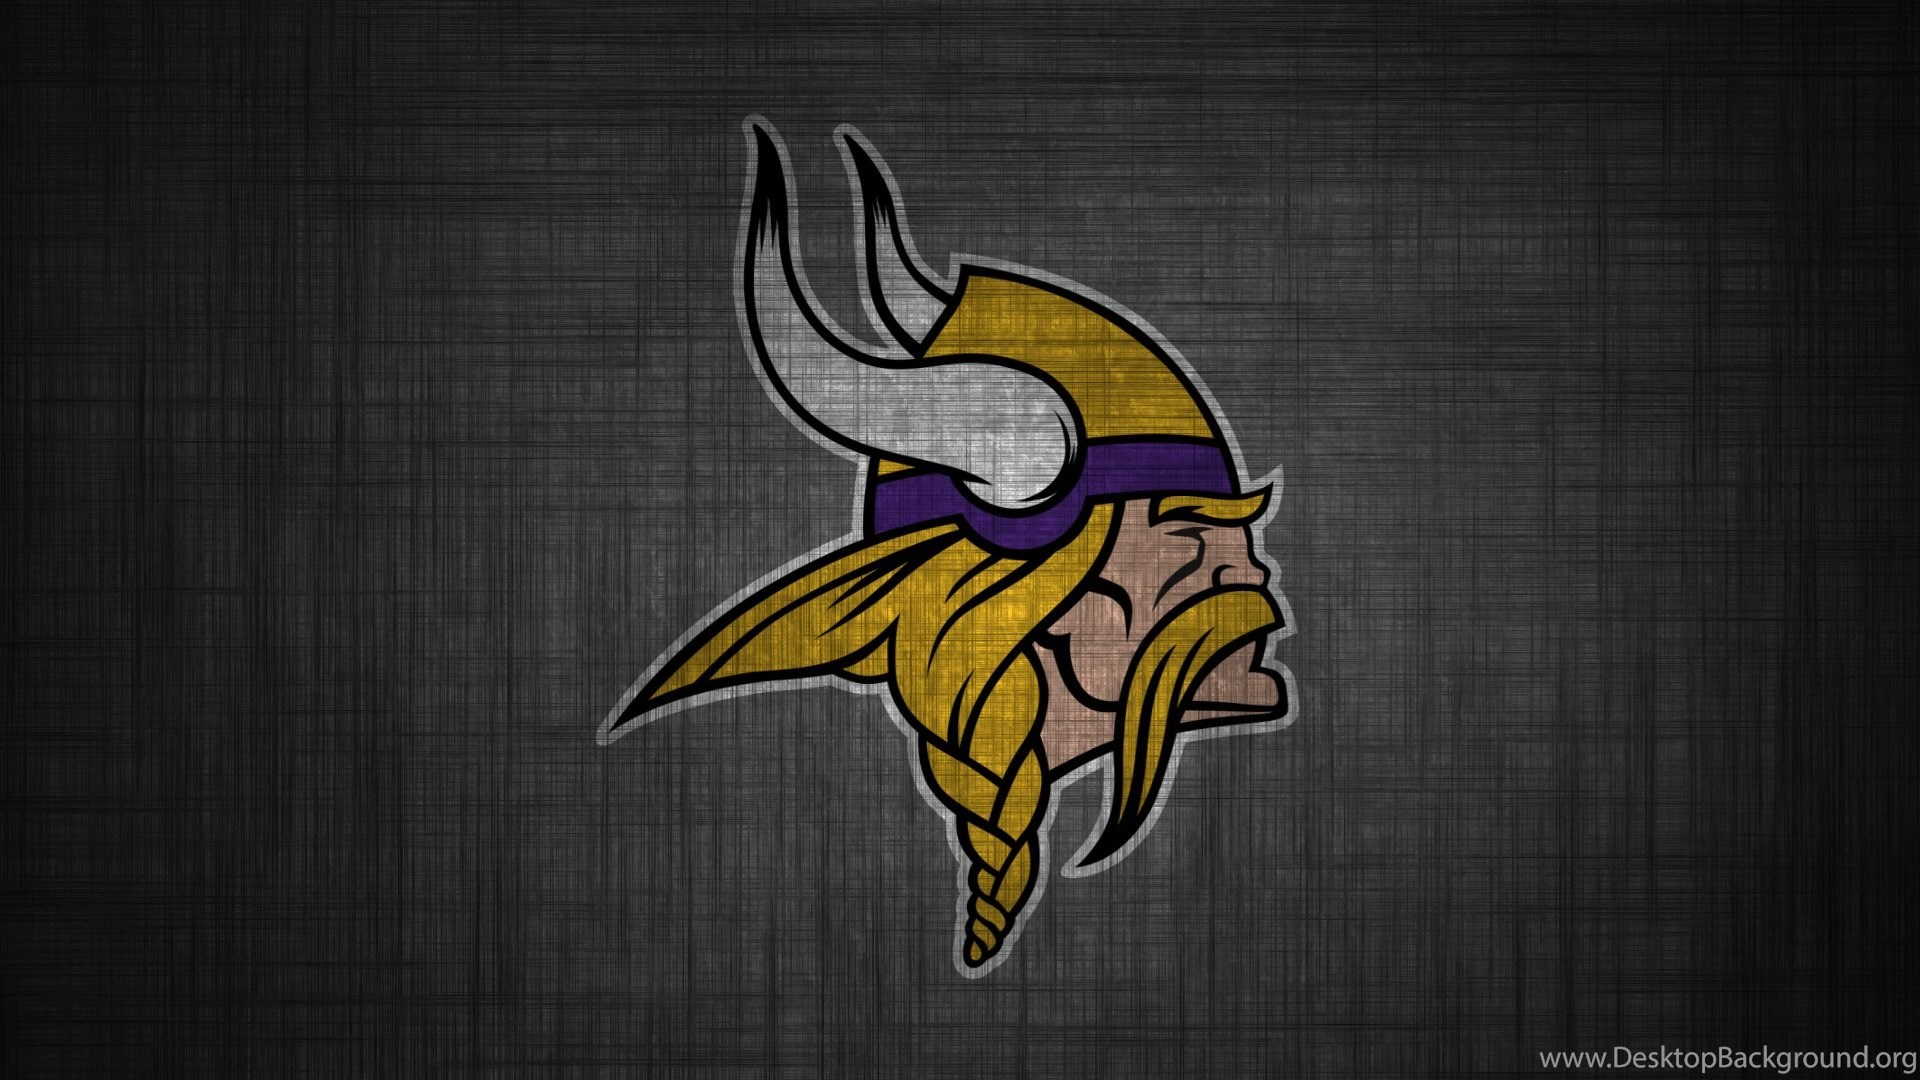 Minnesota Vikings Logo Wallpapers Desktop Background